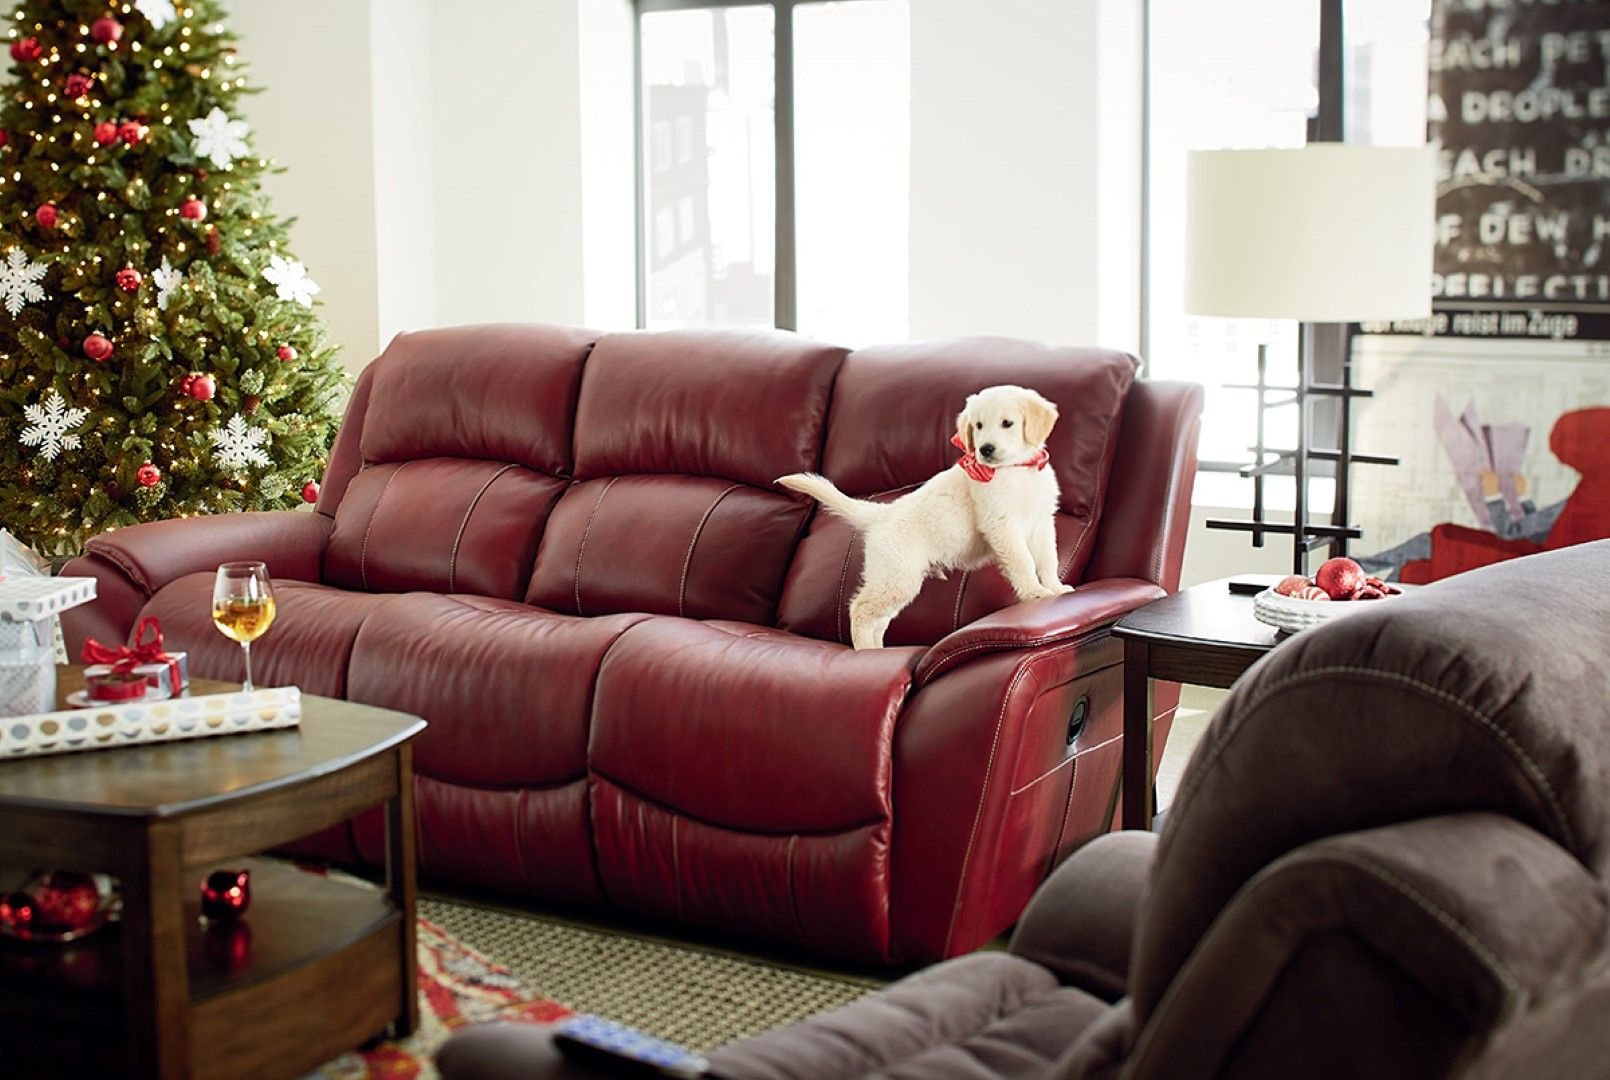 Lazyboy Sofas With A Cute Little Dog And Also A Christmas Tree And